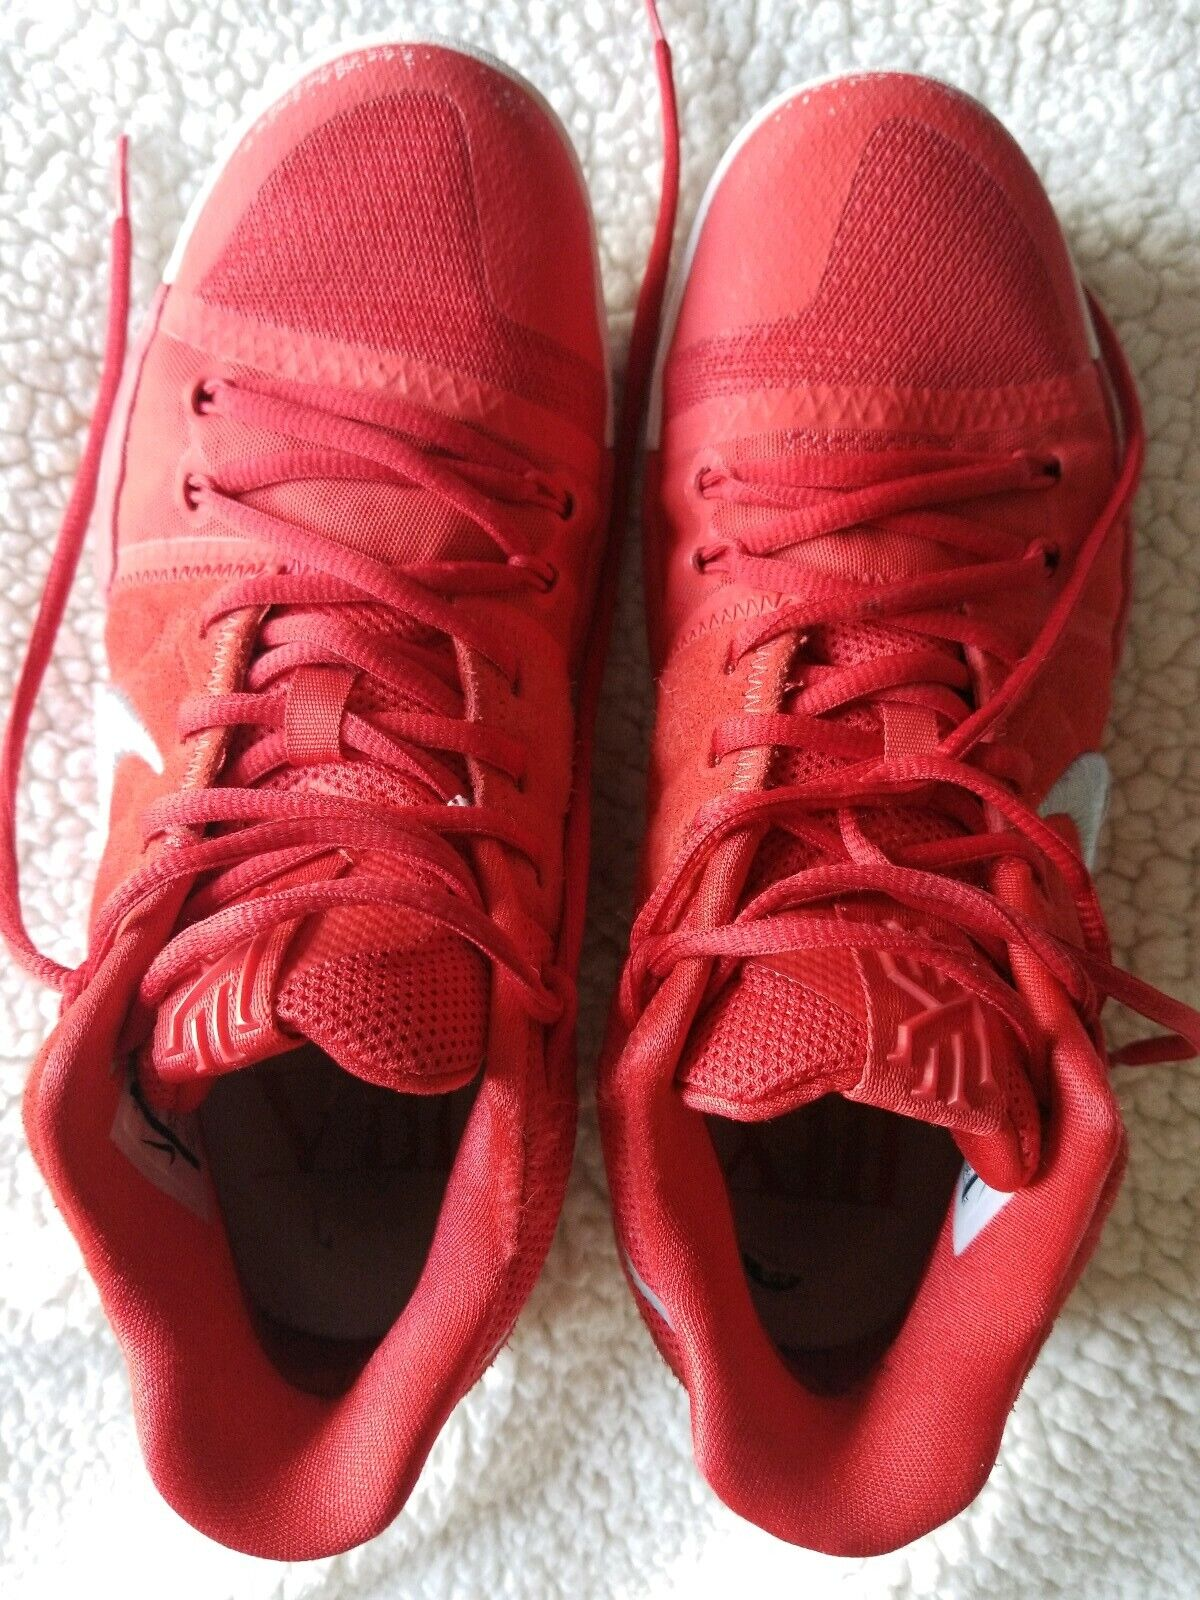 online store 1d48d d2ade Mens shoes size 8.5 pre owned Kyrie Irving 3 RED